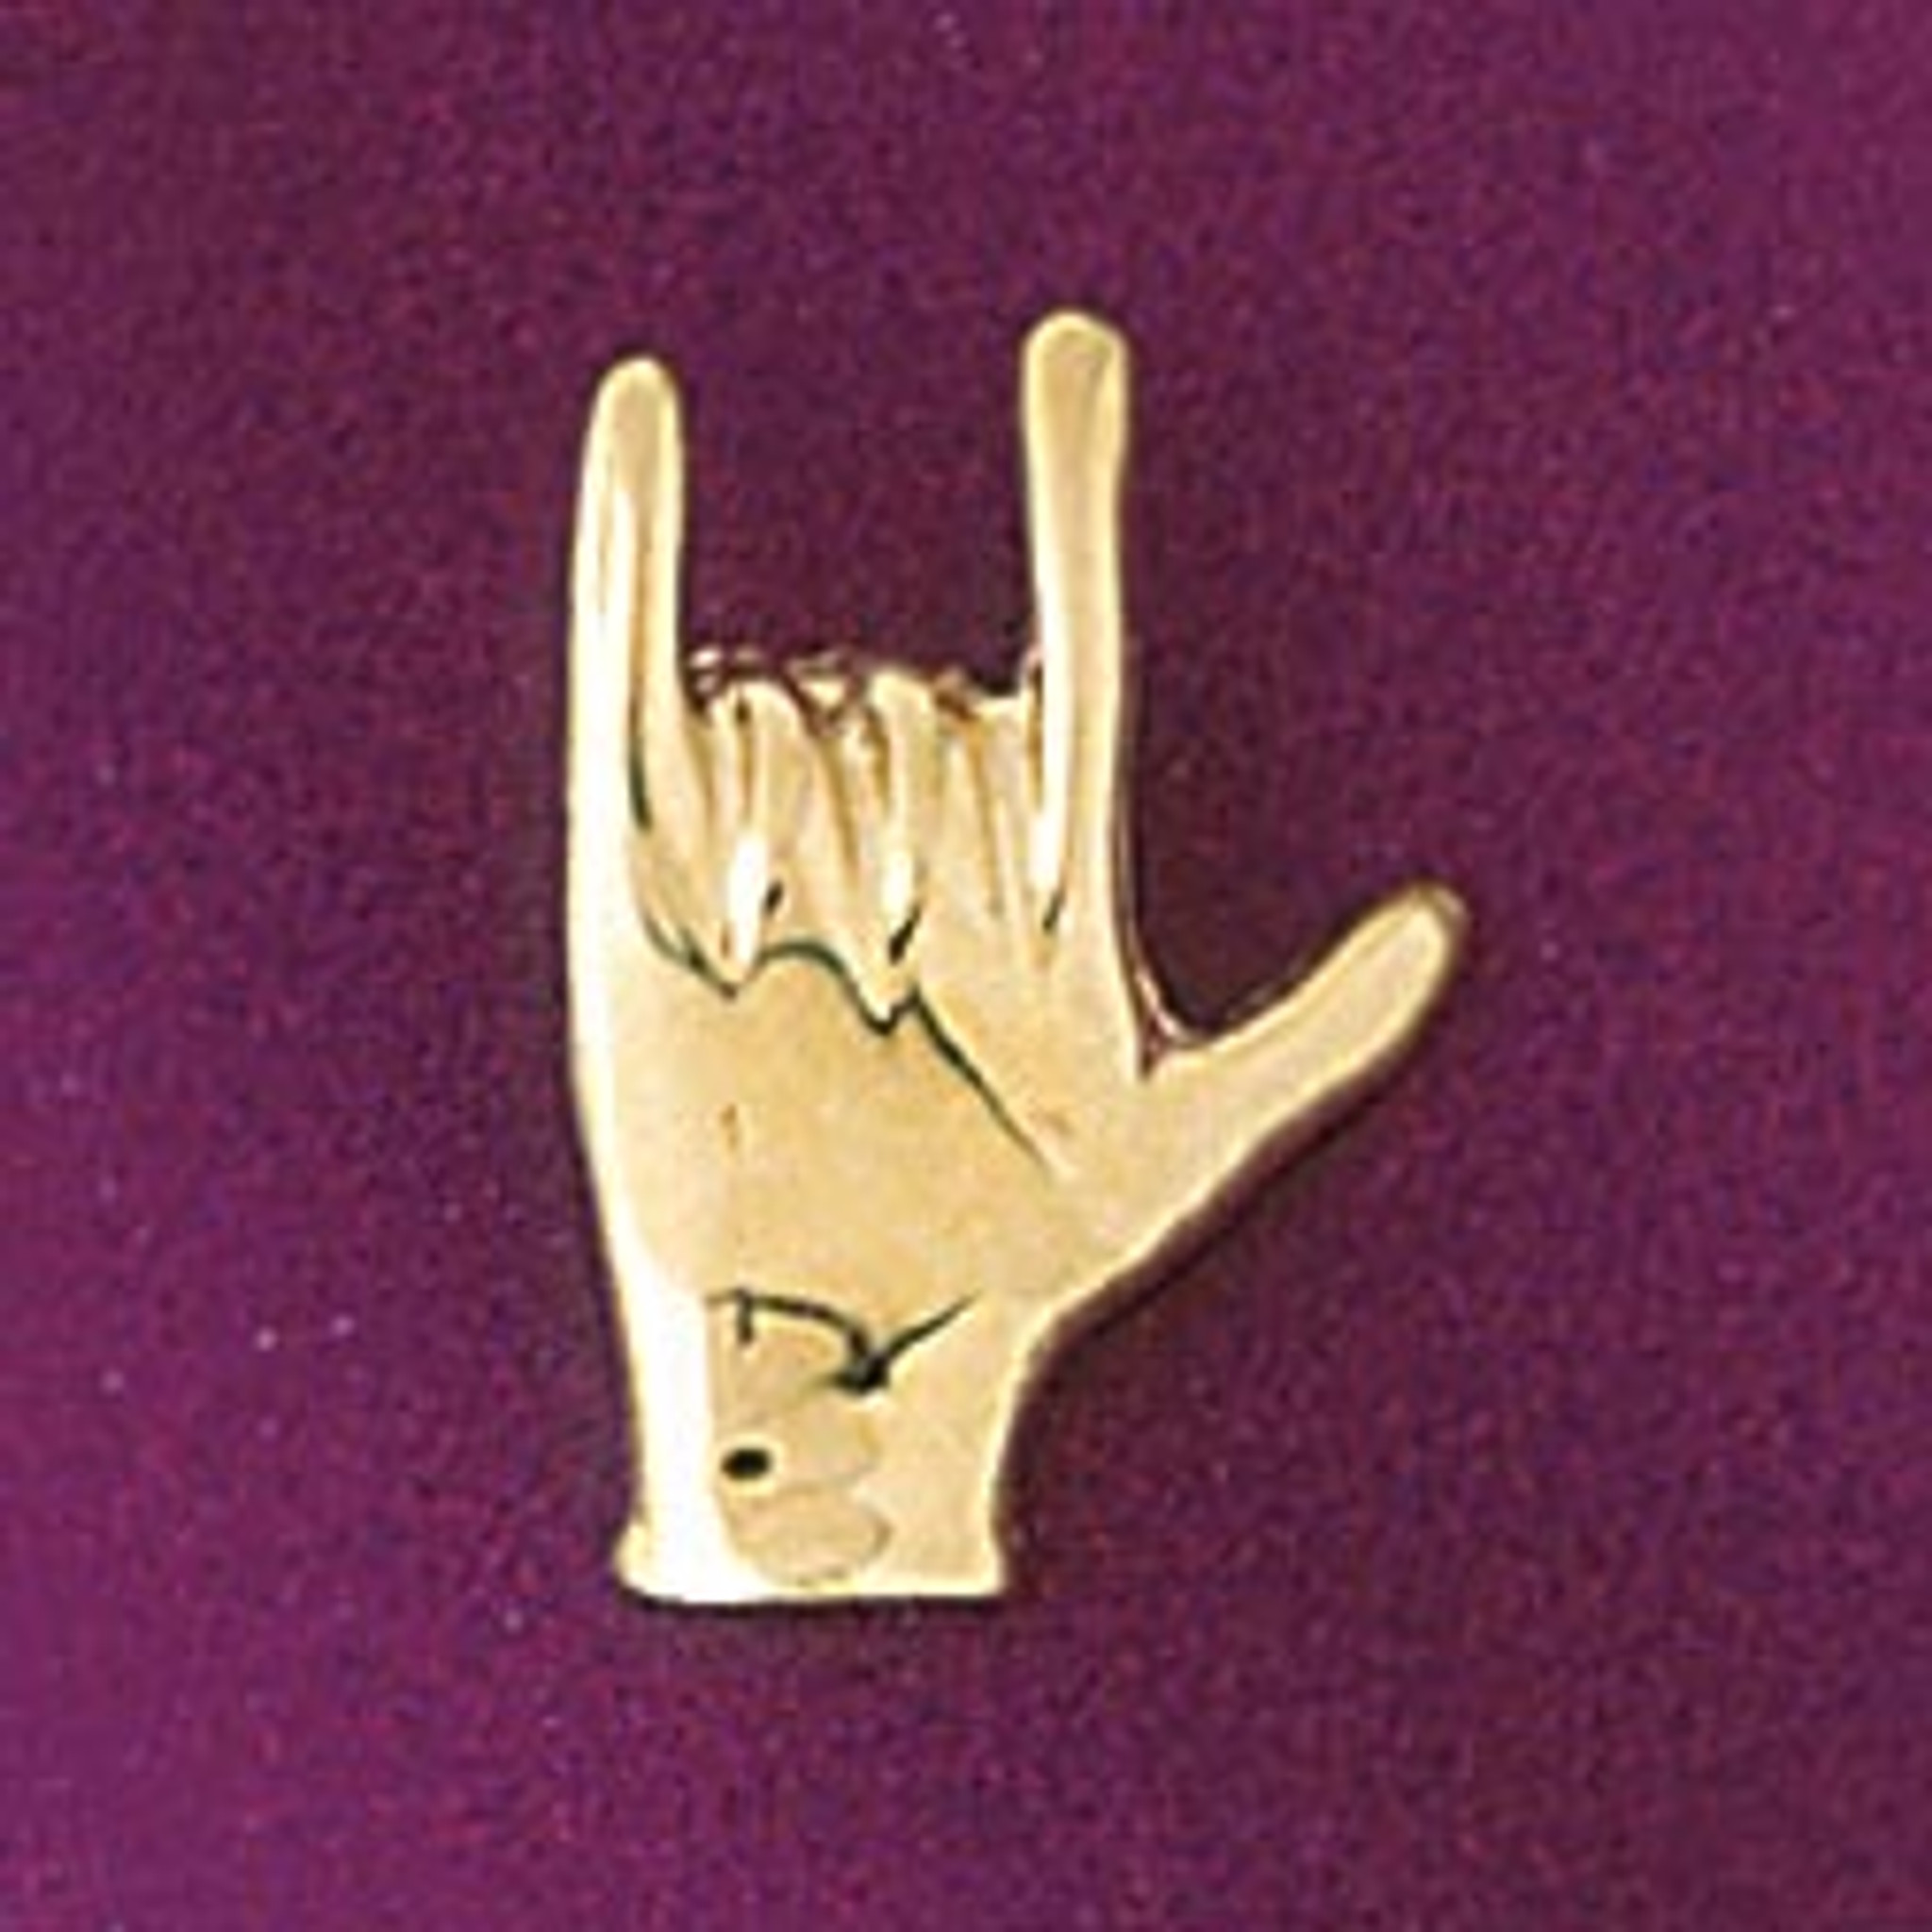 I Love You Hand/Sign Language Pendant Necklace Charm Bracelet in Gold or  Silver 6517